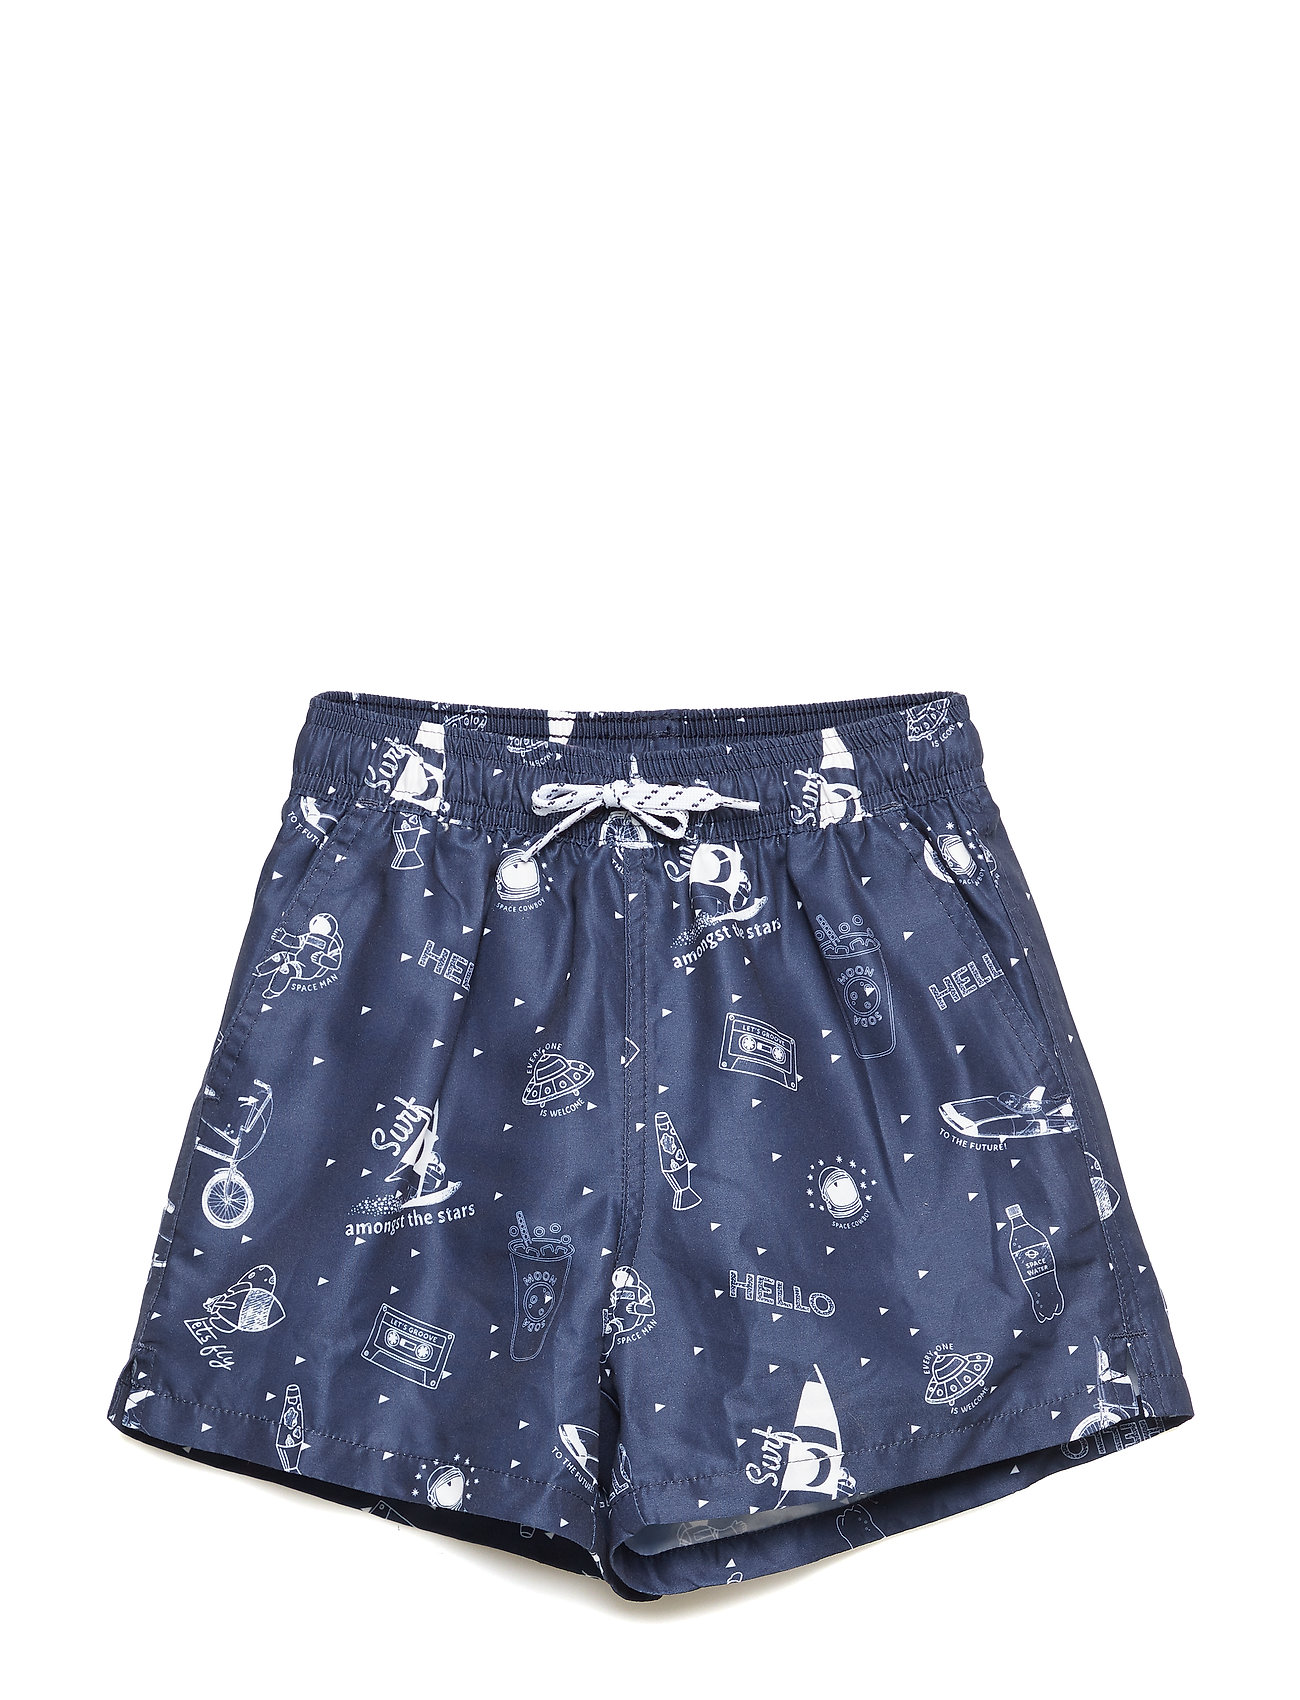 Soft Gallery Dandy Swim Pants - DRESS BLUES, AOP STARSURFER SWIM